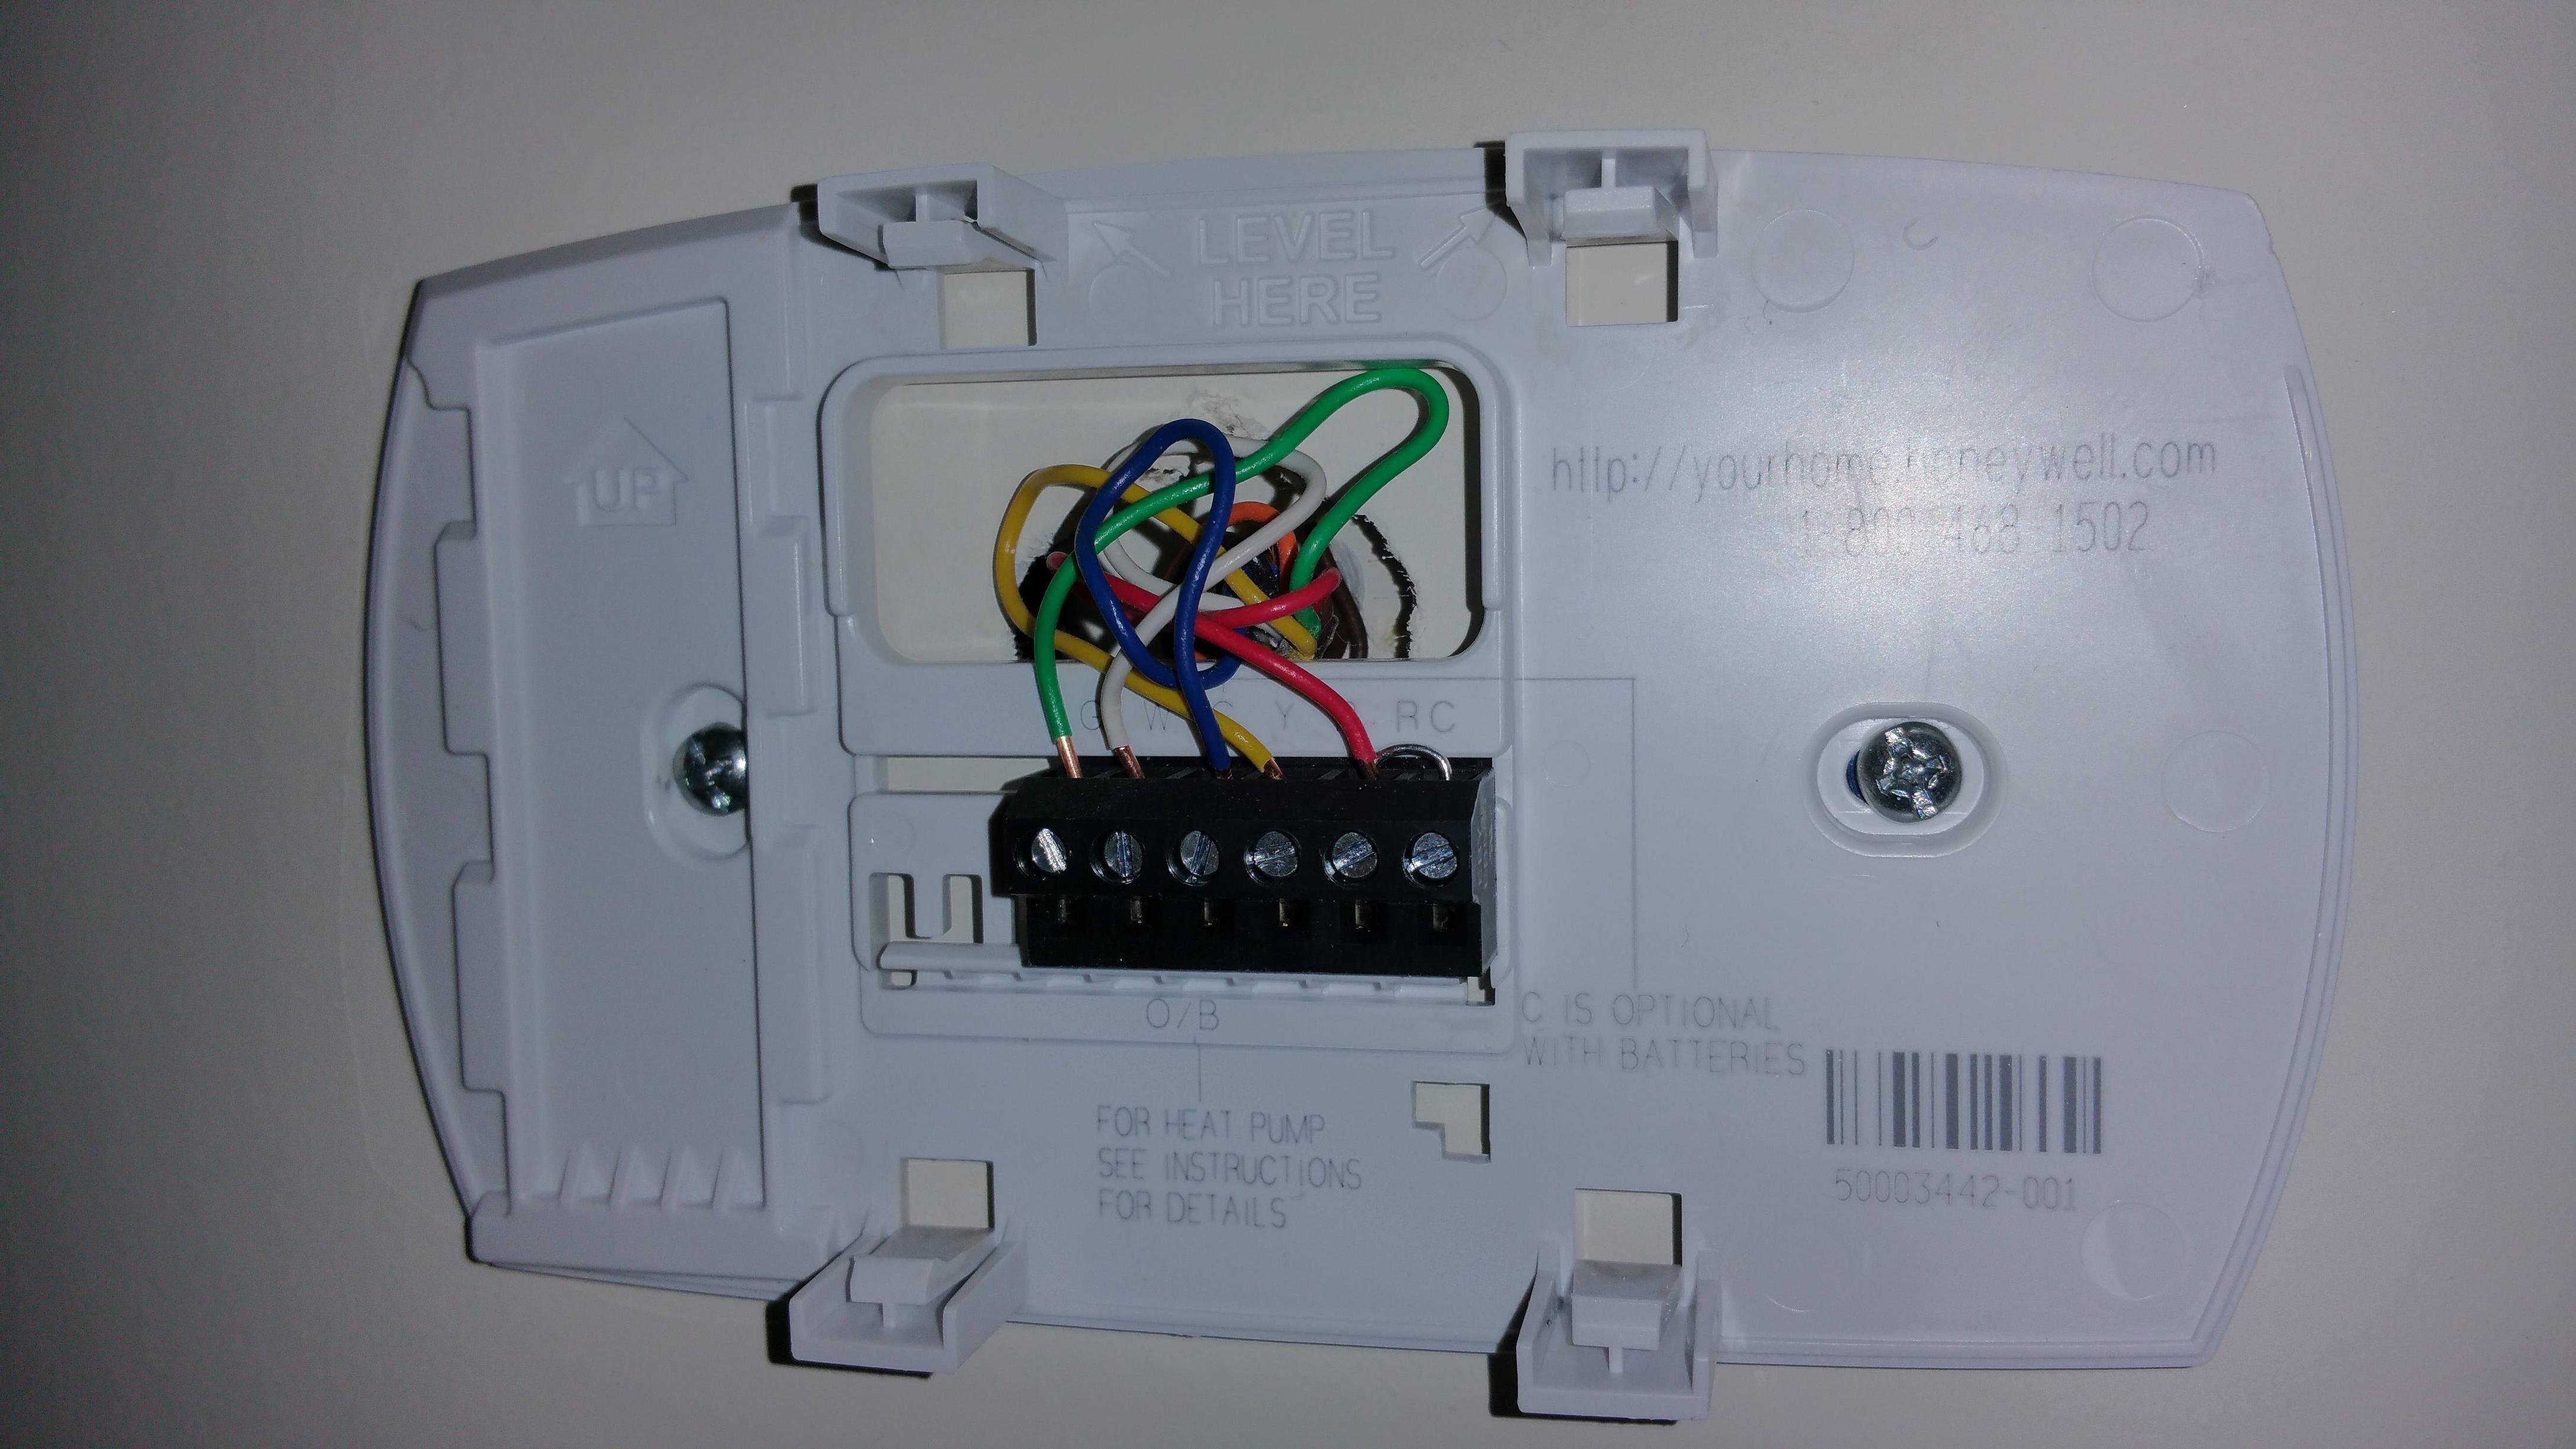 duo therm rv air conditioner wiring diagram portable generator manual transfer switch hvac - is there any risk of running both the fan and furnace at same time? home ...